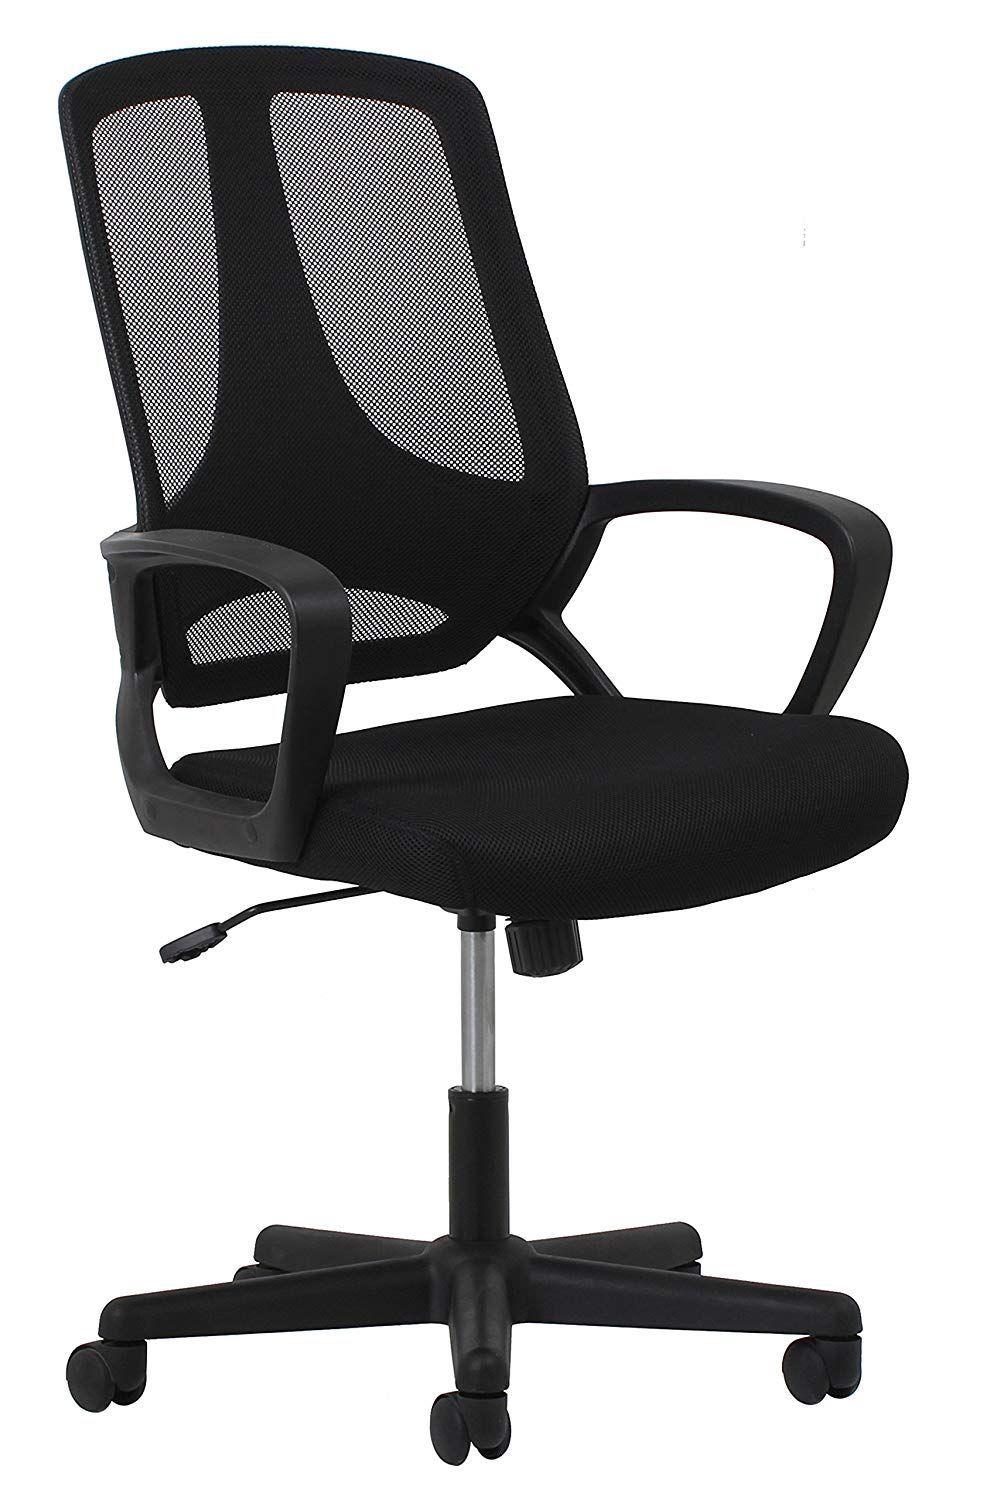 Essentials Swivel Mesh Task Chair with Arms Ergonomic